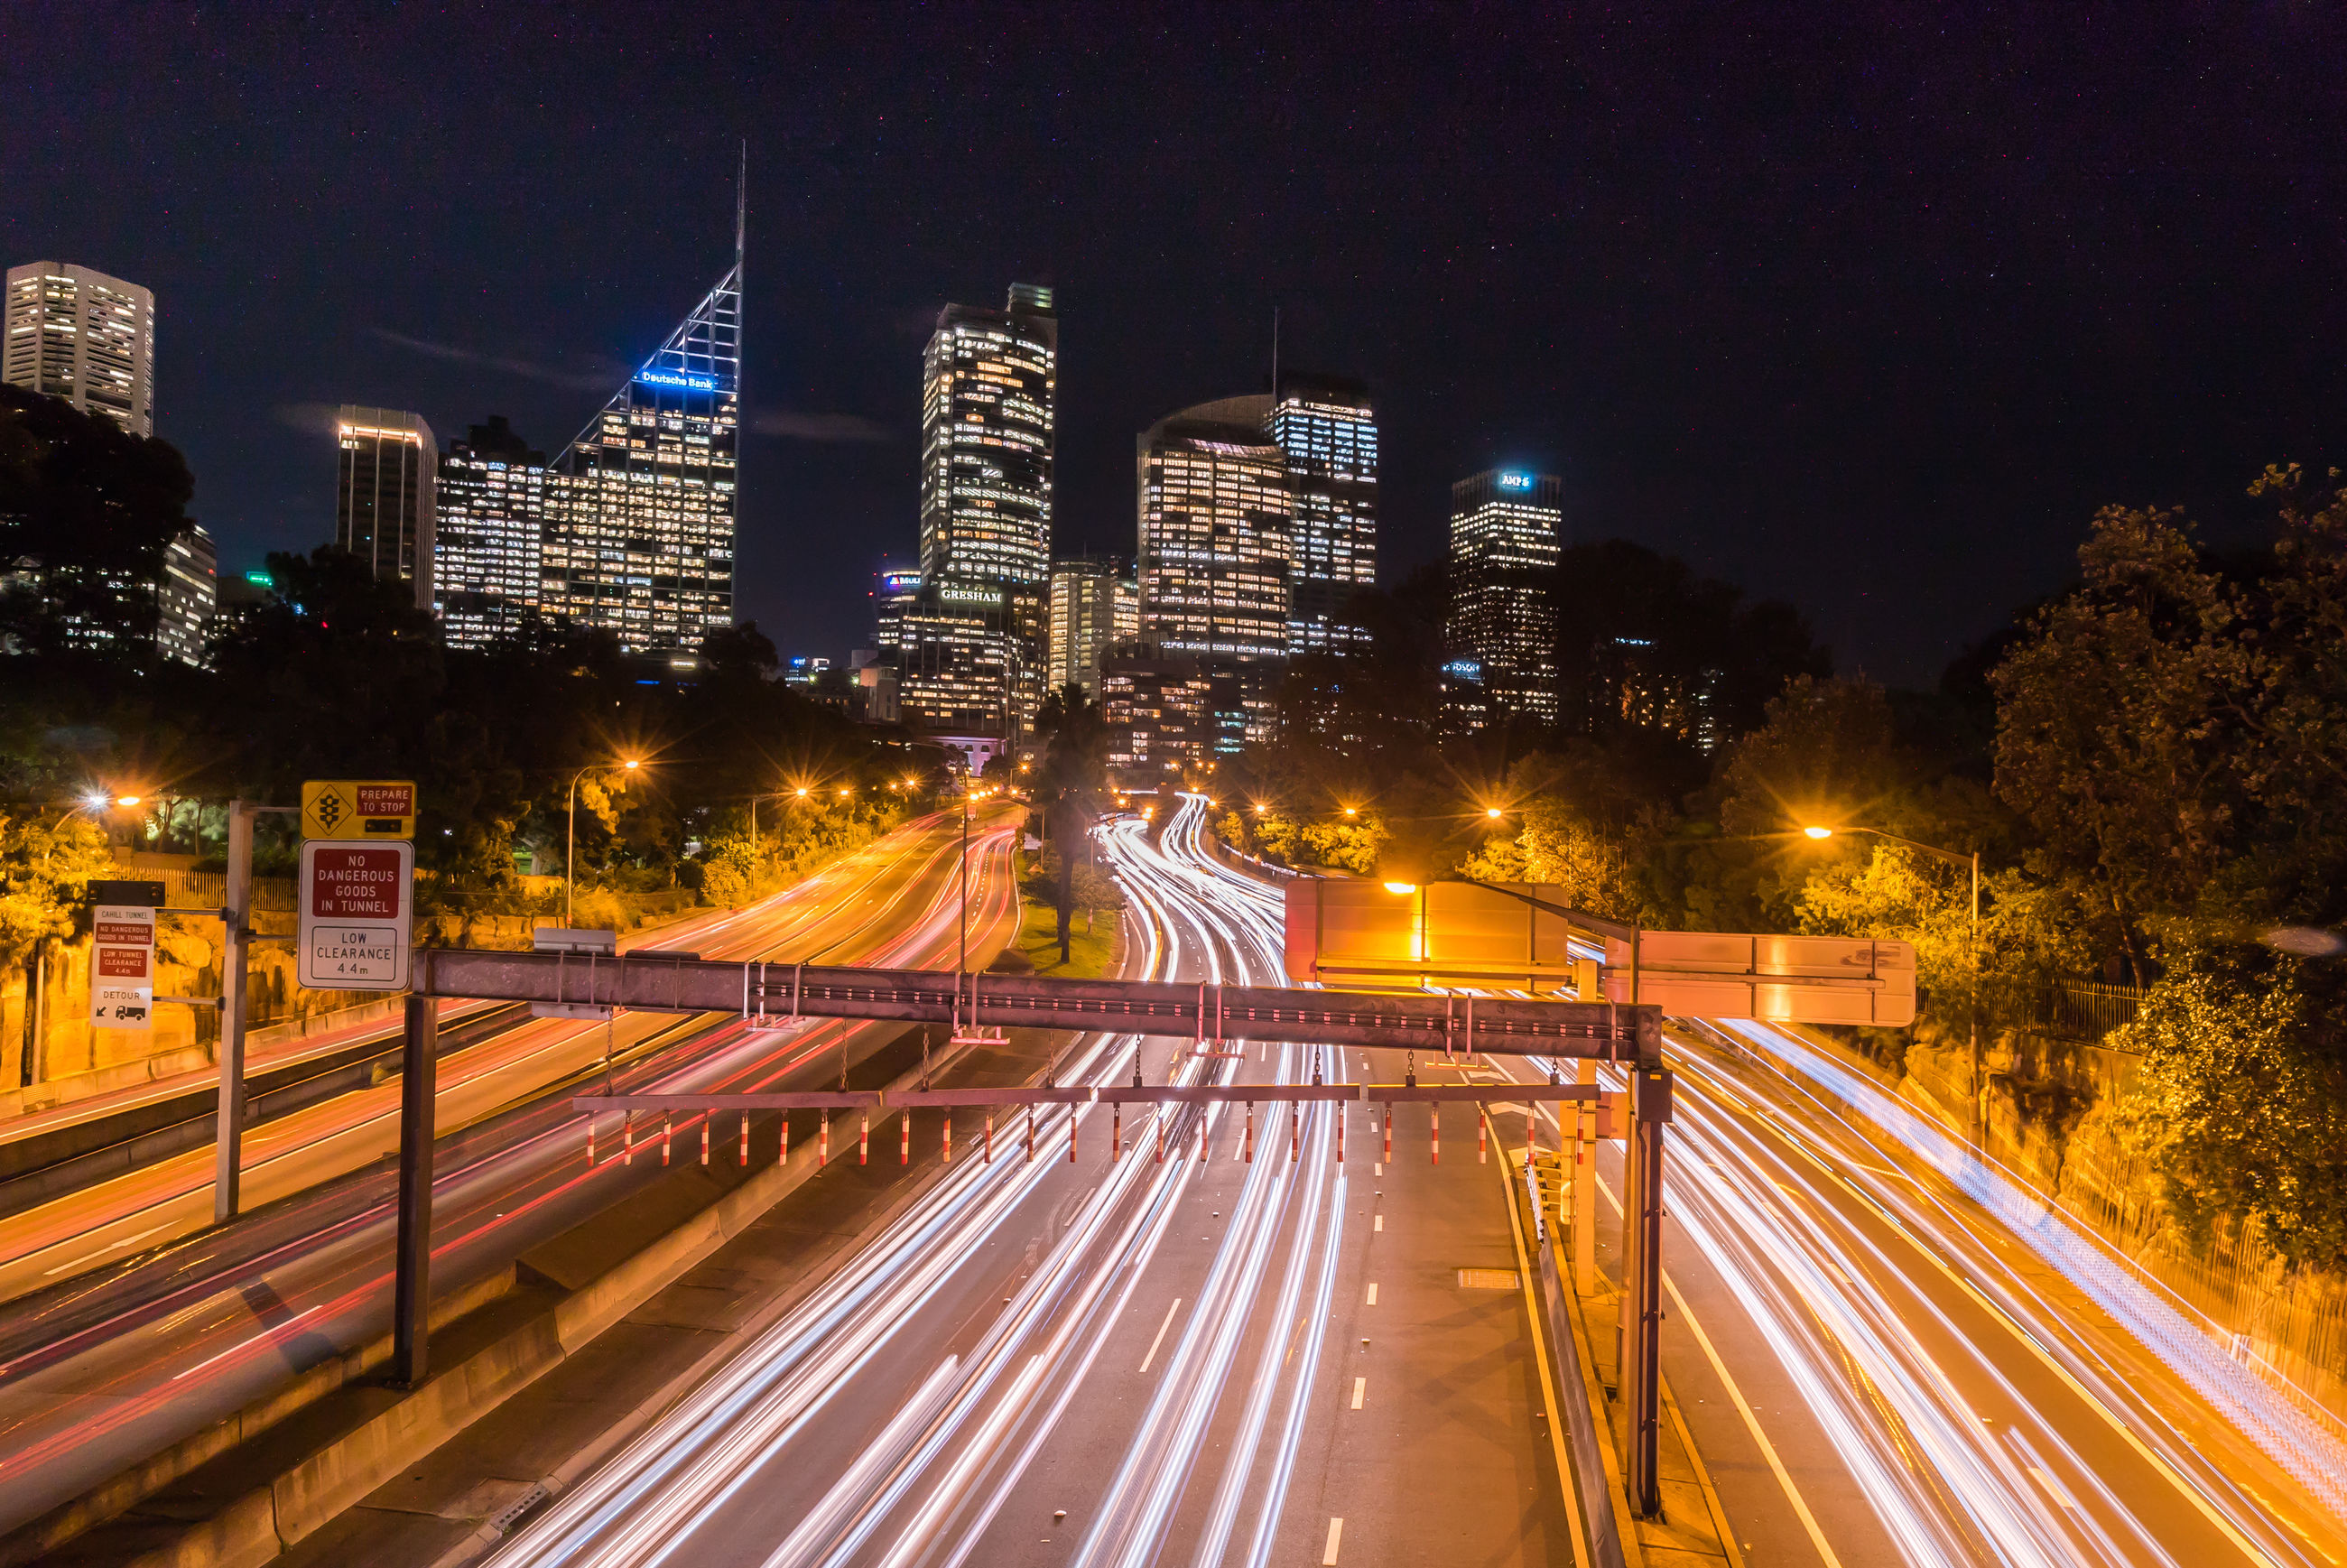 illuminated, night, light trail, long exposure, city, architecture, built structure, speed, building exterior, transportation, motion, high angle view, blurred motion, road, cityscape, city life, street light, sky, skyscraper, modern